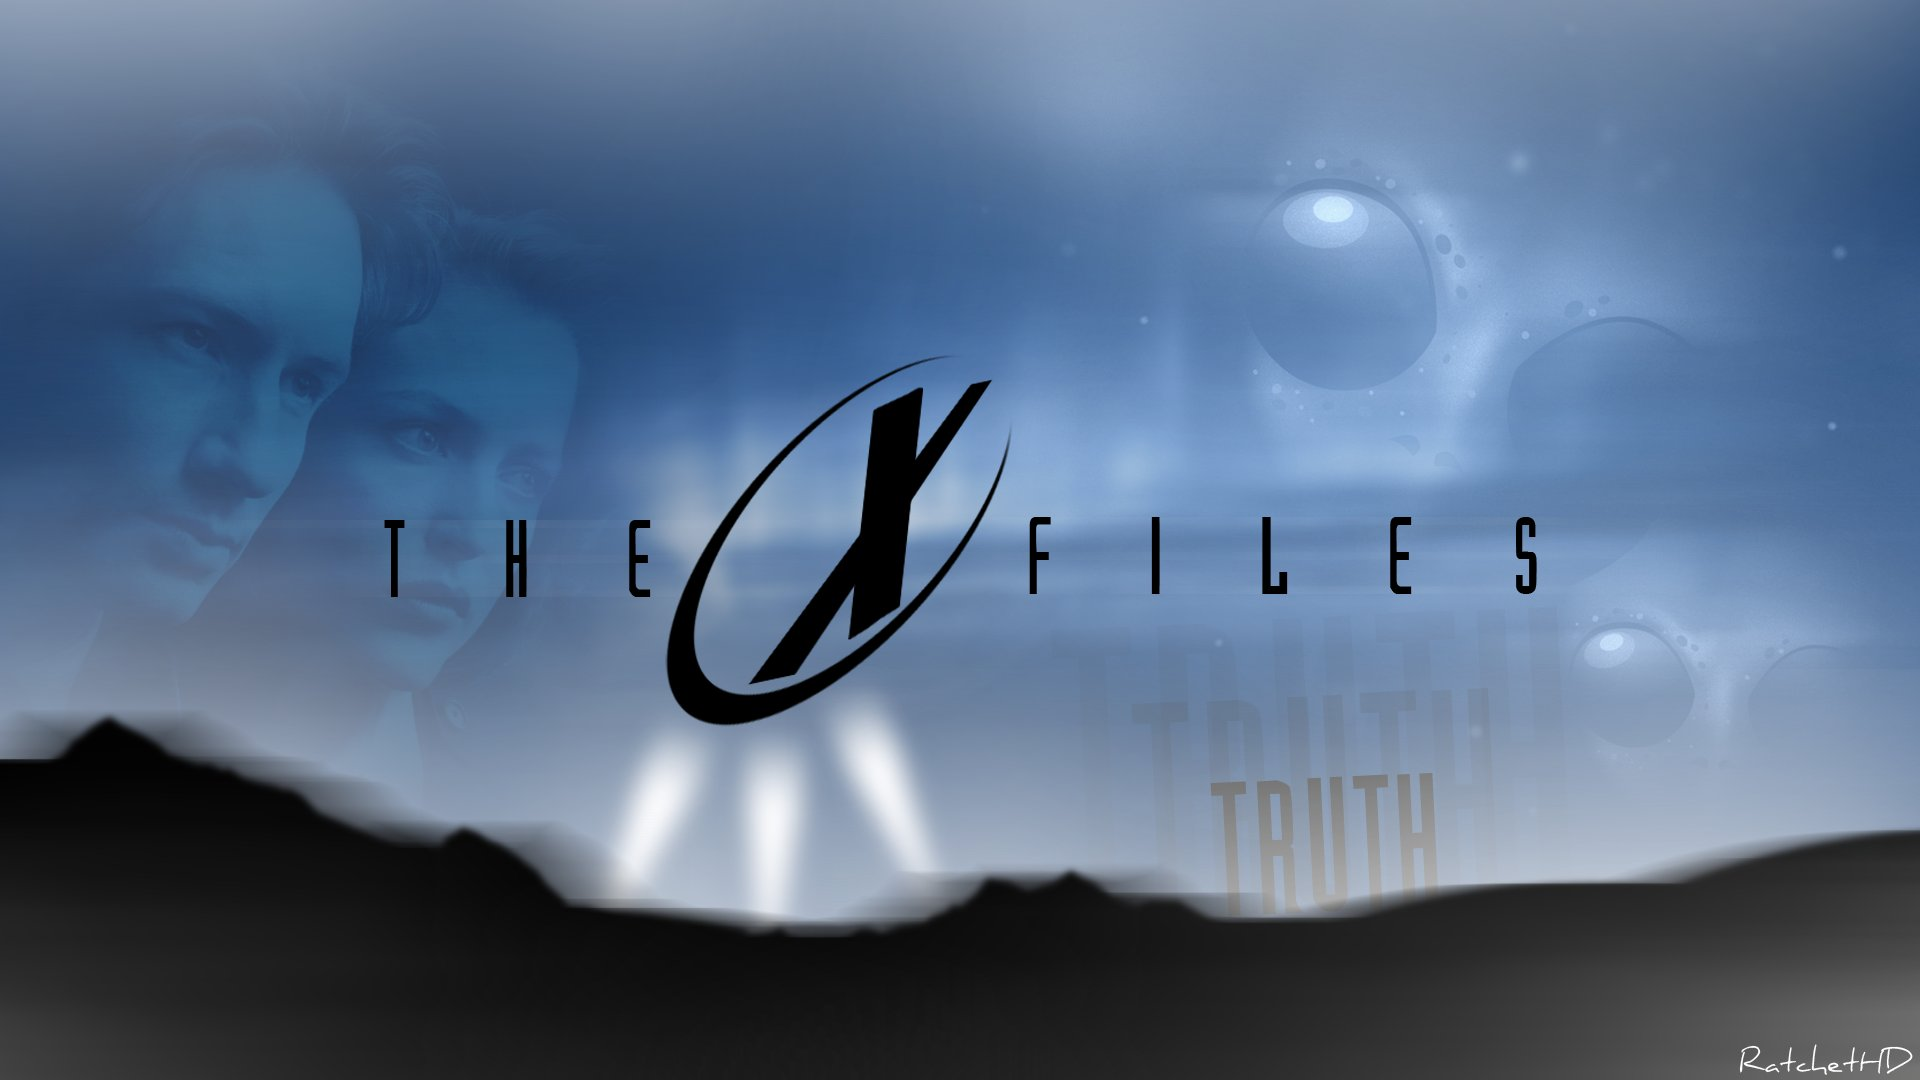 FILES sci fi mystery drama television files series poster wallpaper 1920x1080